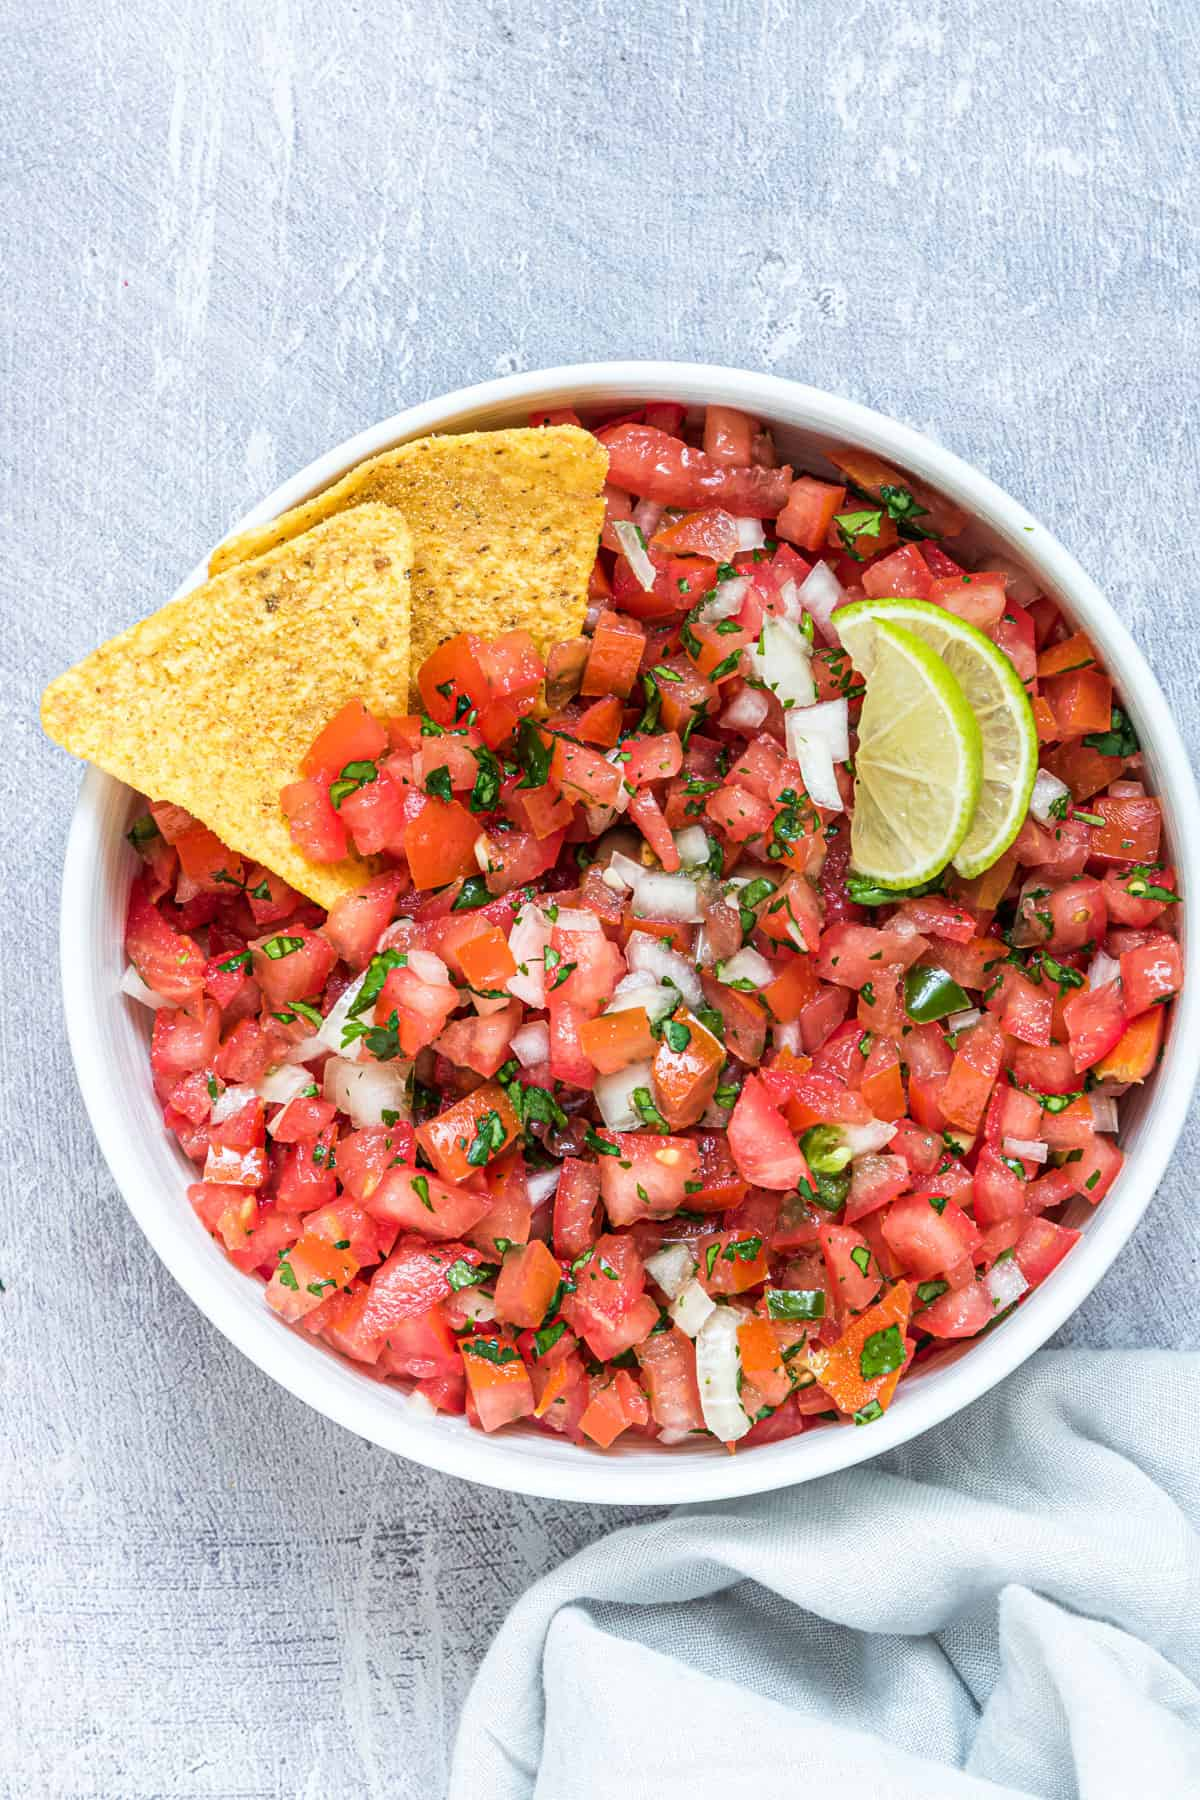 the finished pico de gallo in a serving bowl garnished with two chips and lime wedges